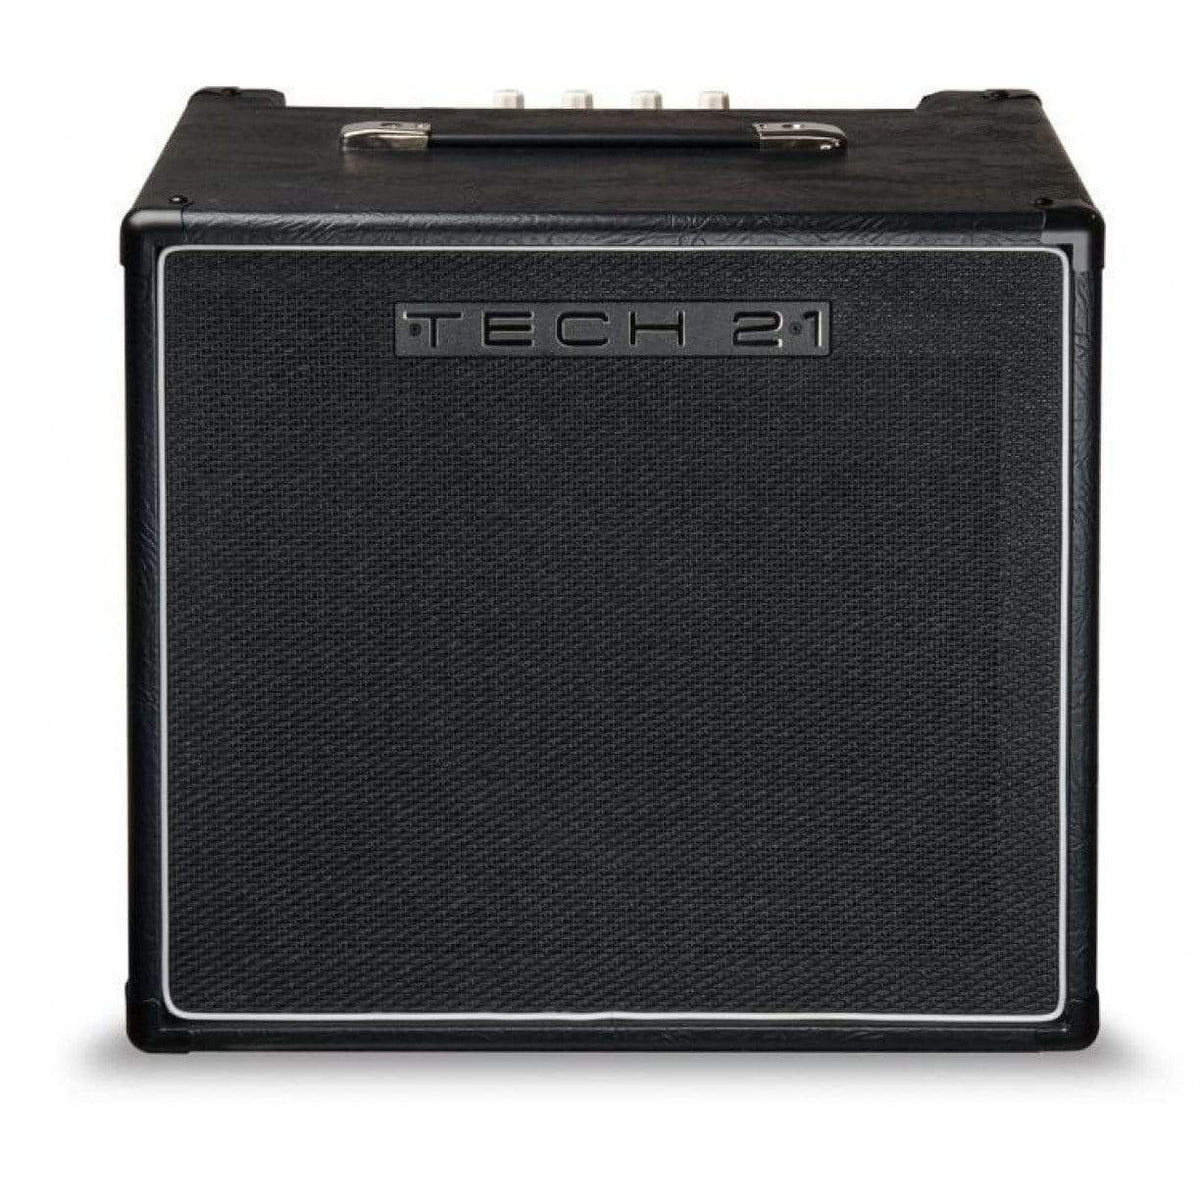 Tech 21 PE-200 Power Engine Deuce 200W Deluxe Powered Cab For Guitar And Bass